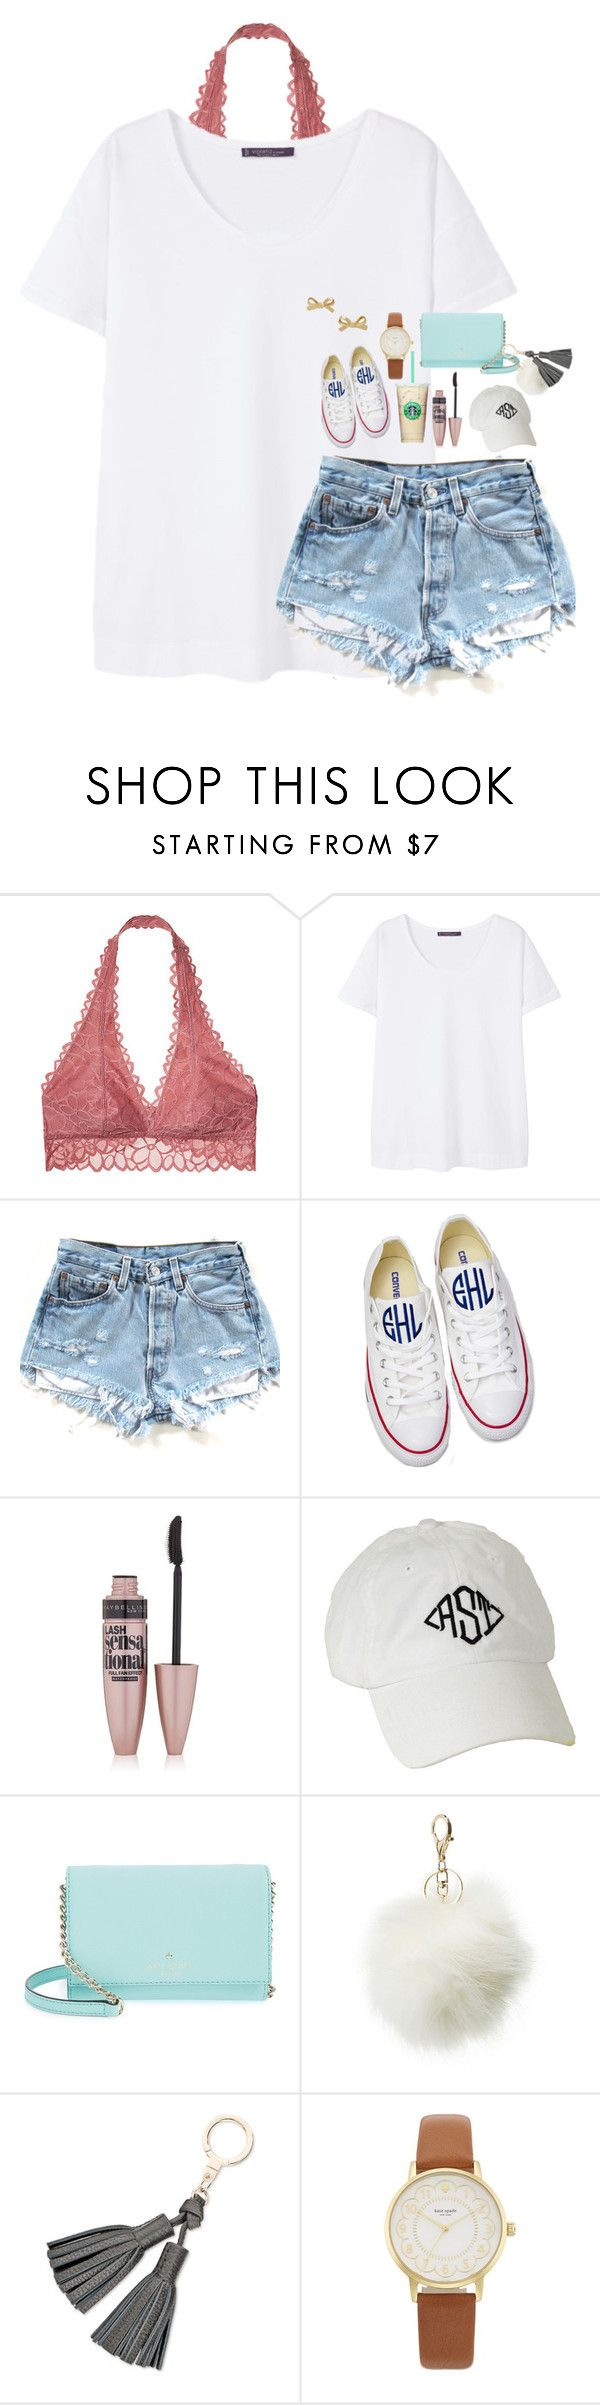 """""""Contest day 4// shopping"""" by pandapeeper ❤ liked on Polyvore featuring Victoria's Secret, MANGO, Converse, Maybelline, Kate Spade, Charlotte Russe and lucysbeachcontest"""